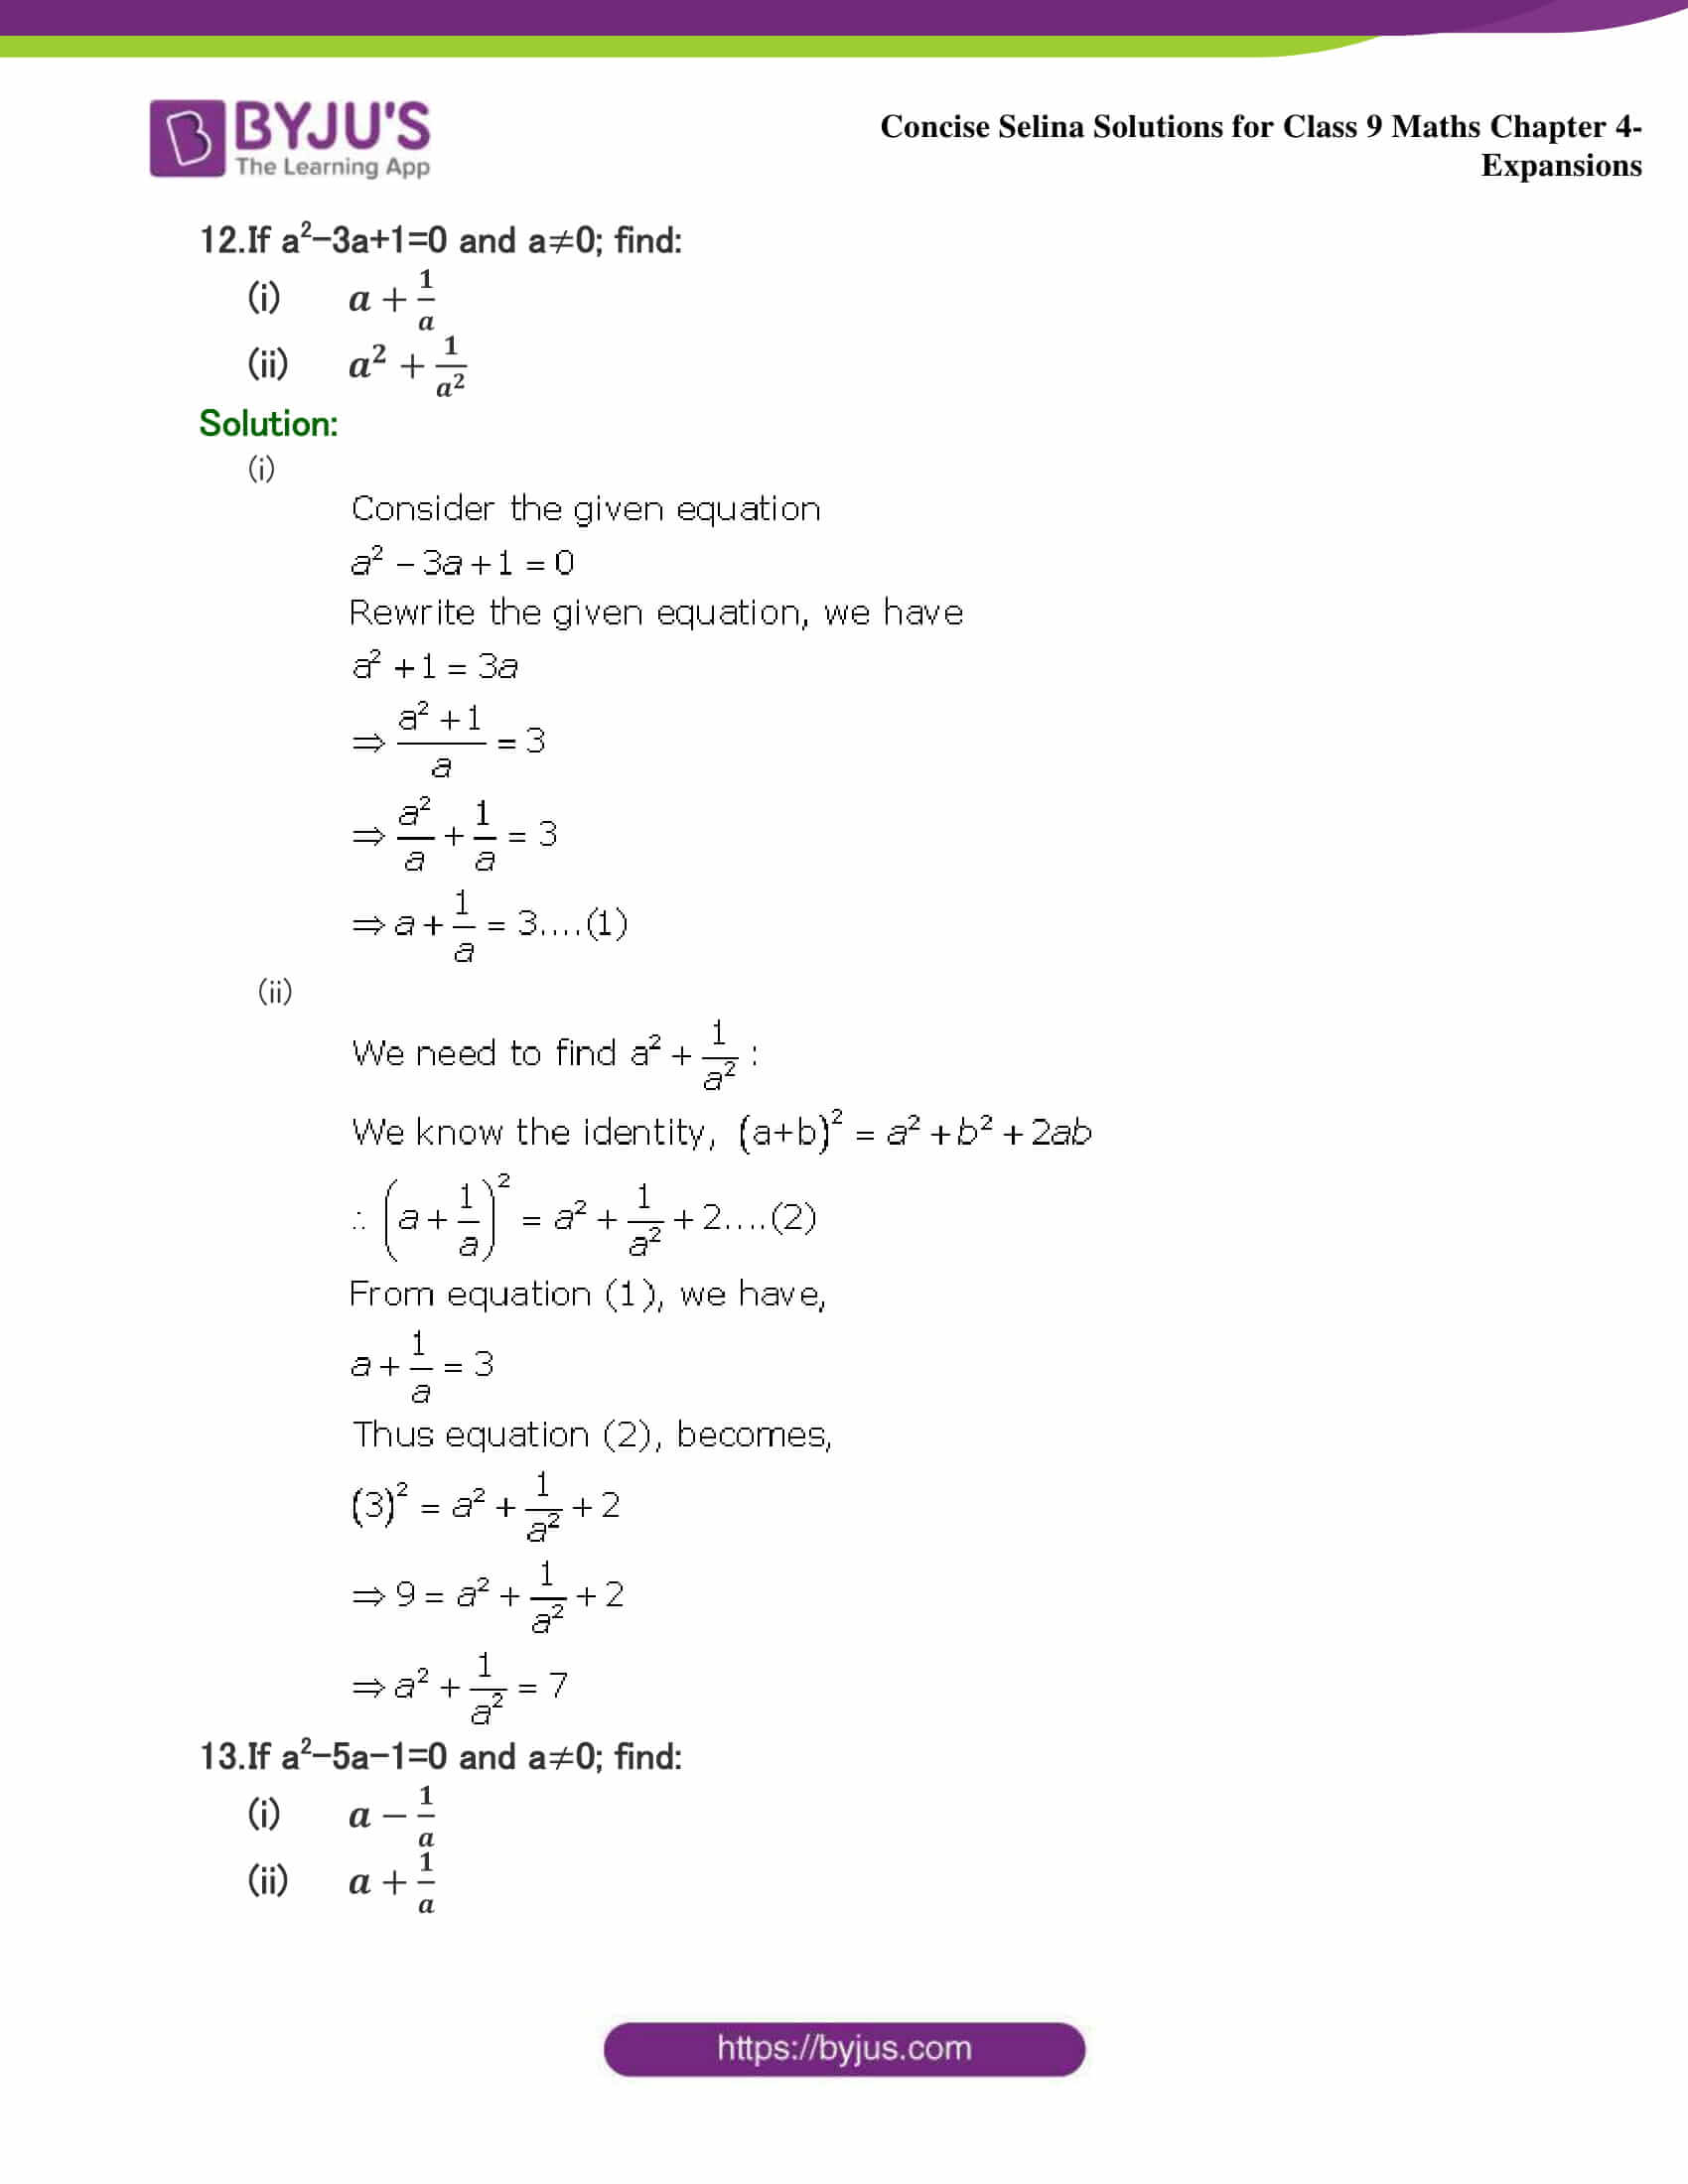 Selina Solutions Class 9 Maths Chapter 4 Expansions part 12